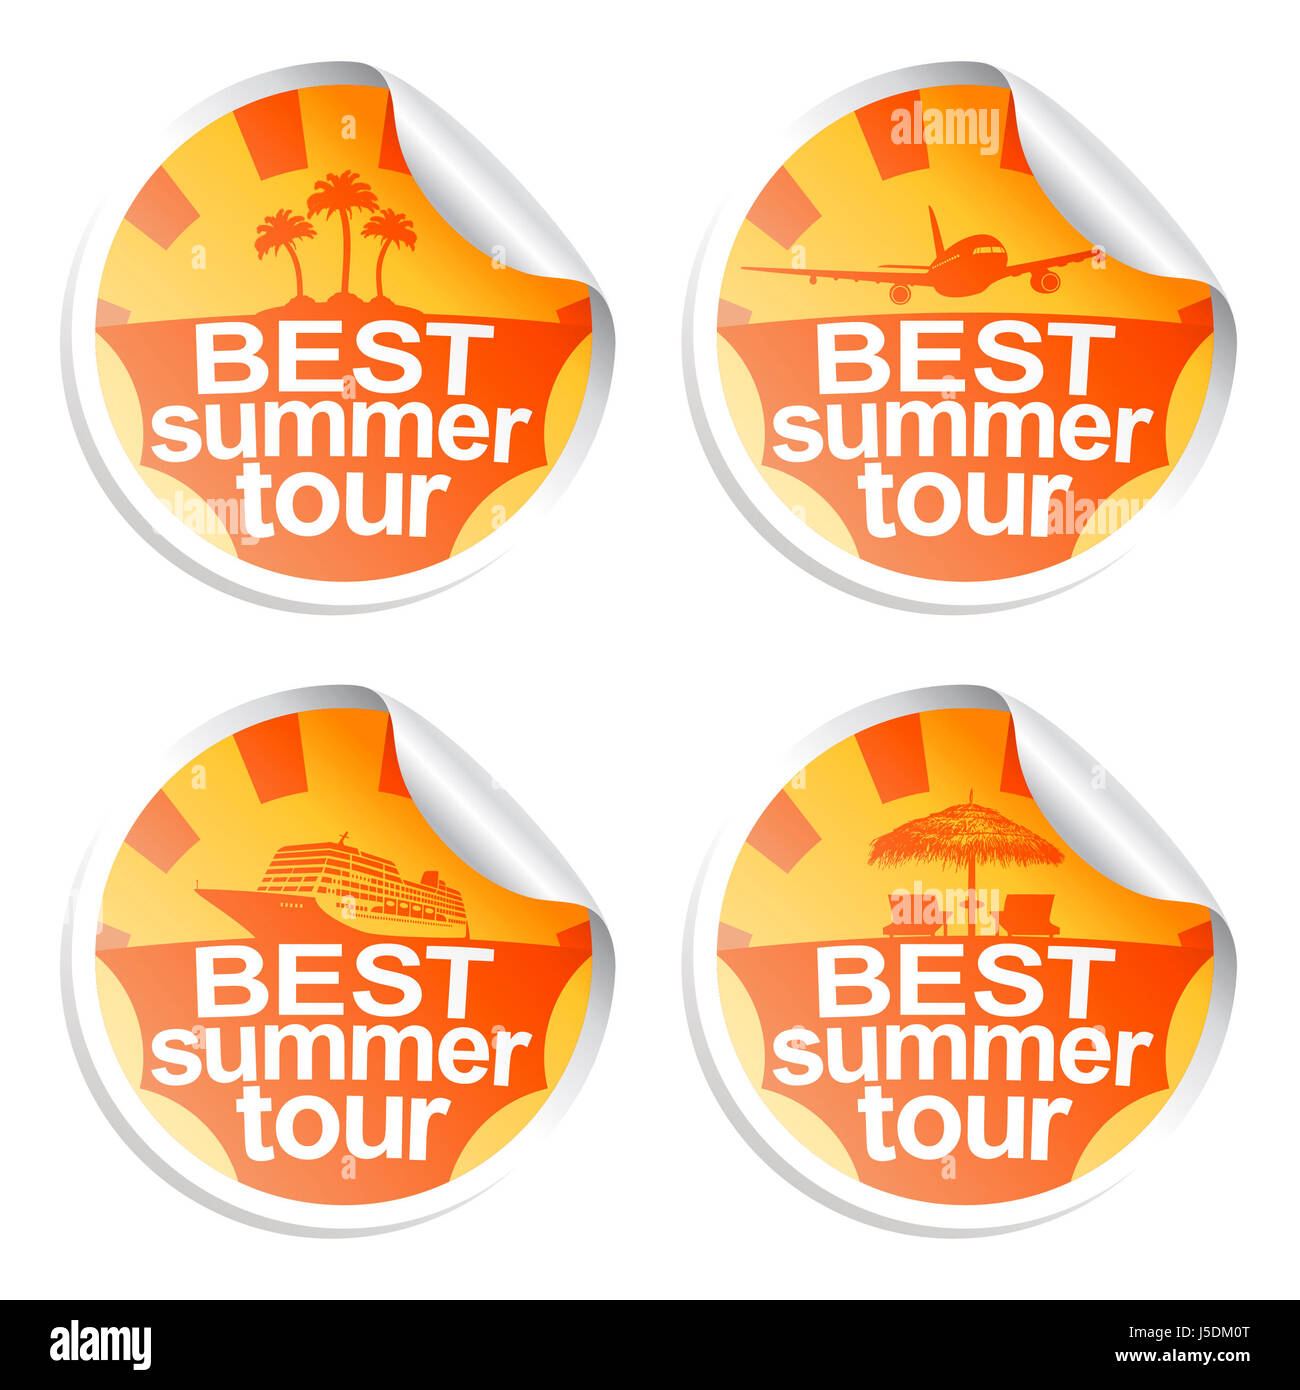 Set summer stickers of best tour - Stock Image